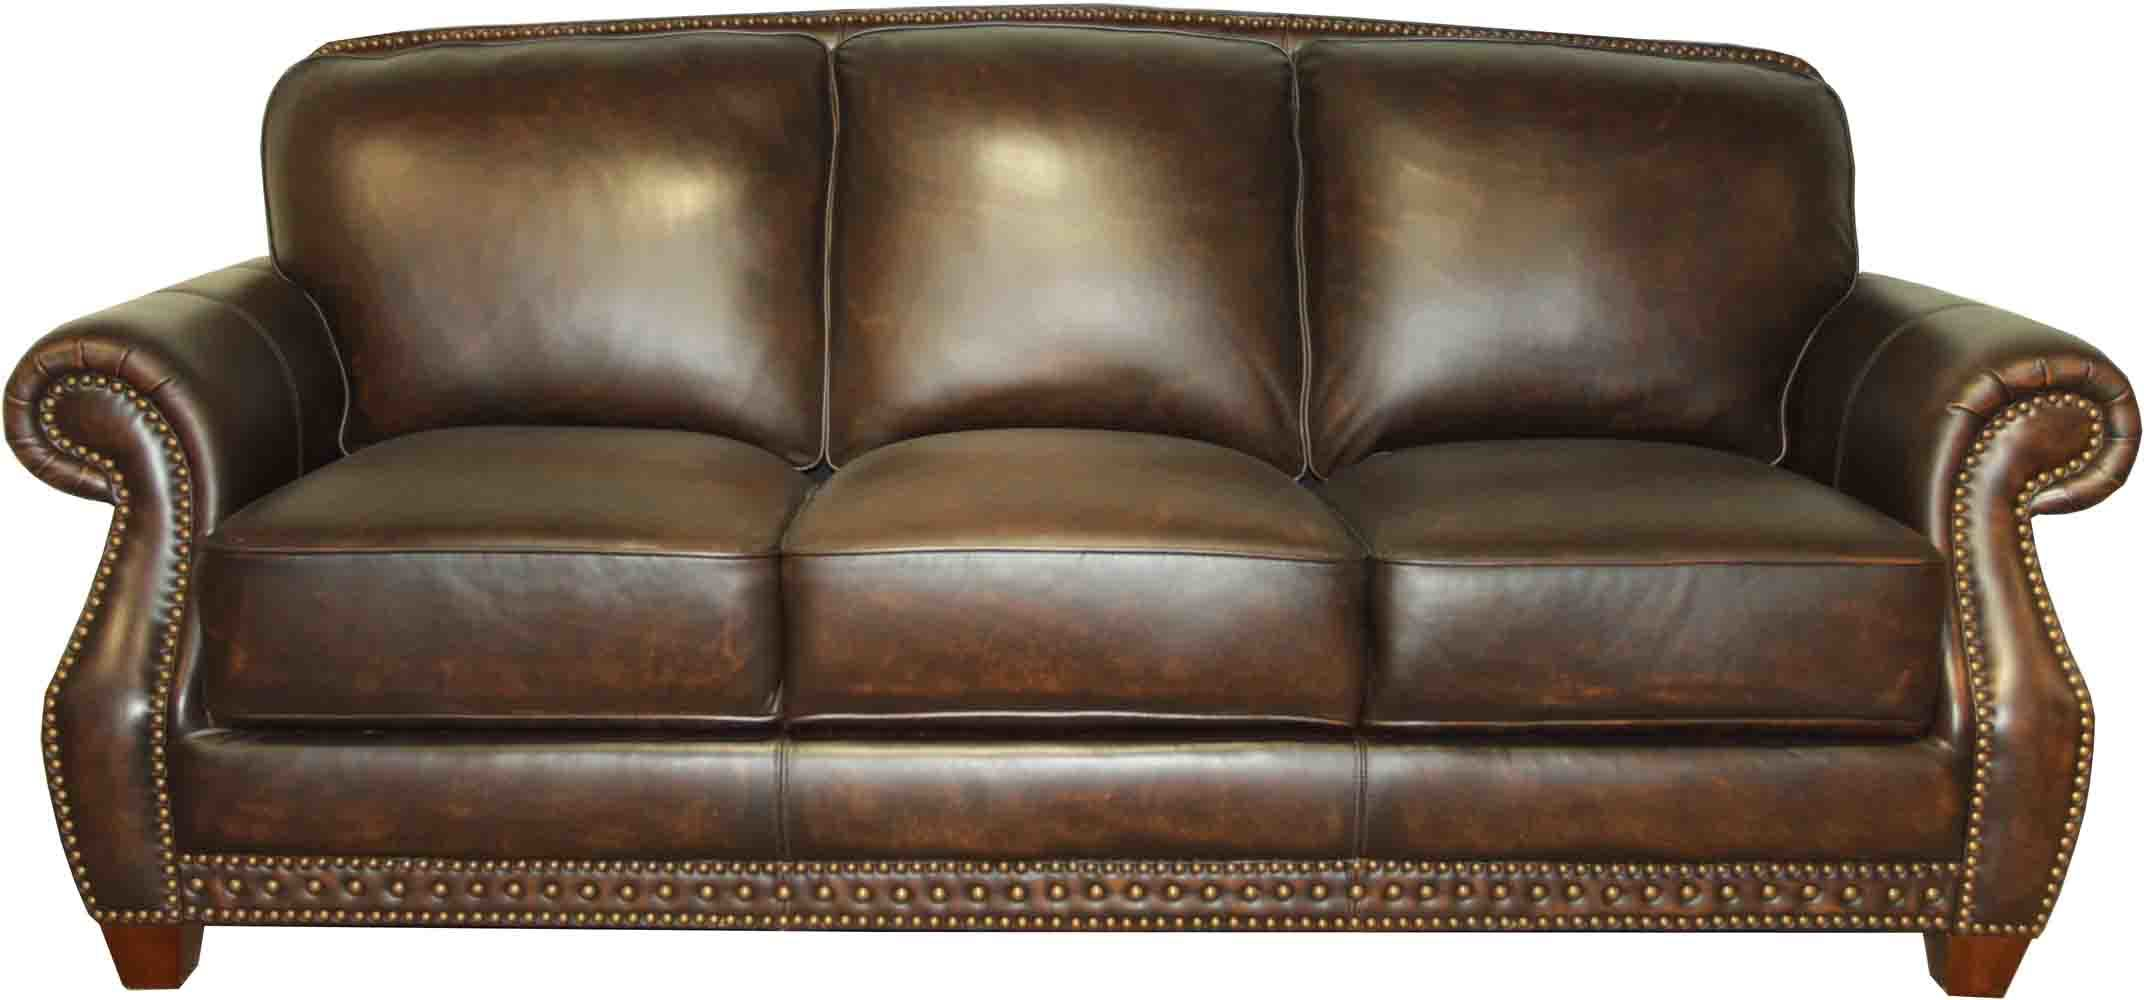 China leather sofa cm5002 china hand rub leather sofa for Leather sectional sofa